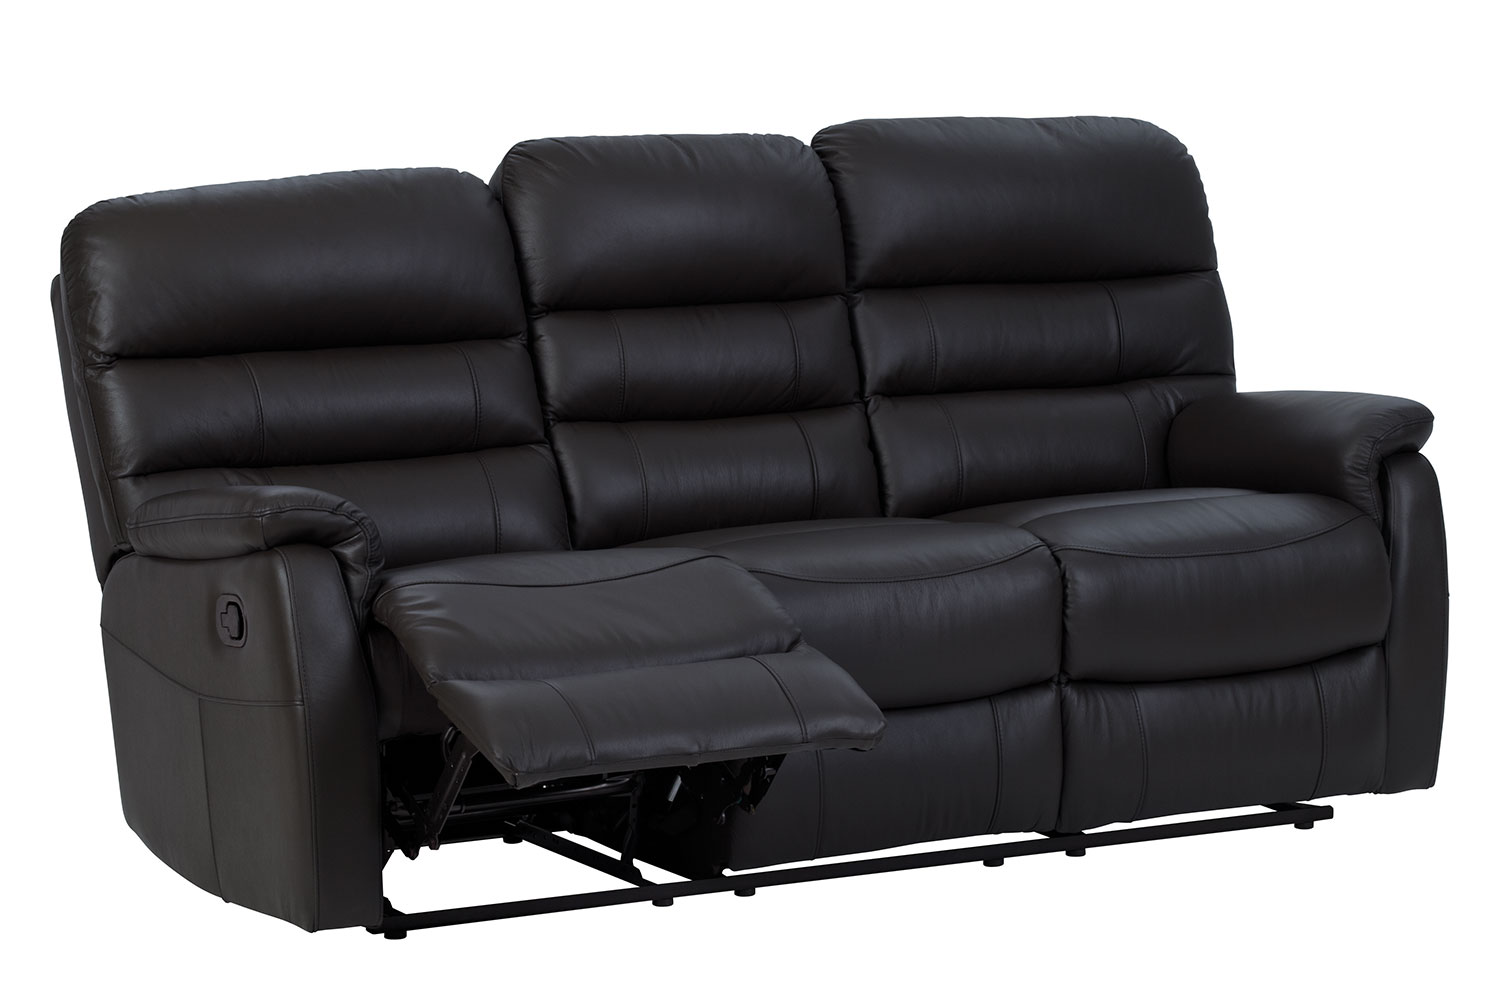 leather recliner chairs harvey norman folding chair on amazon 3 seater sofa luna